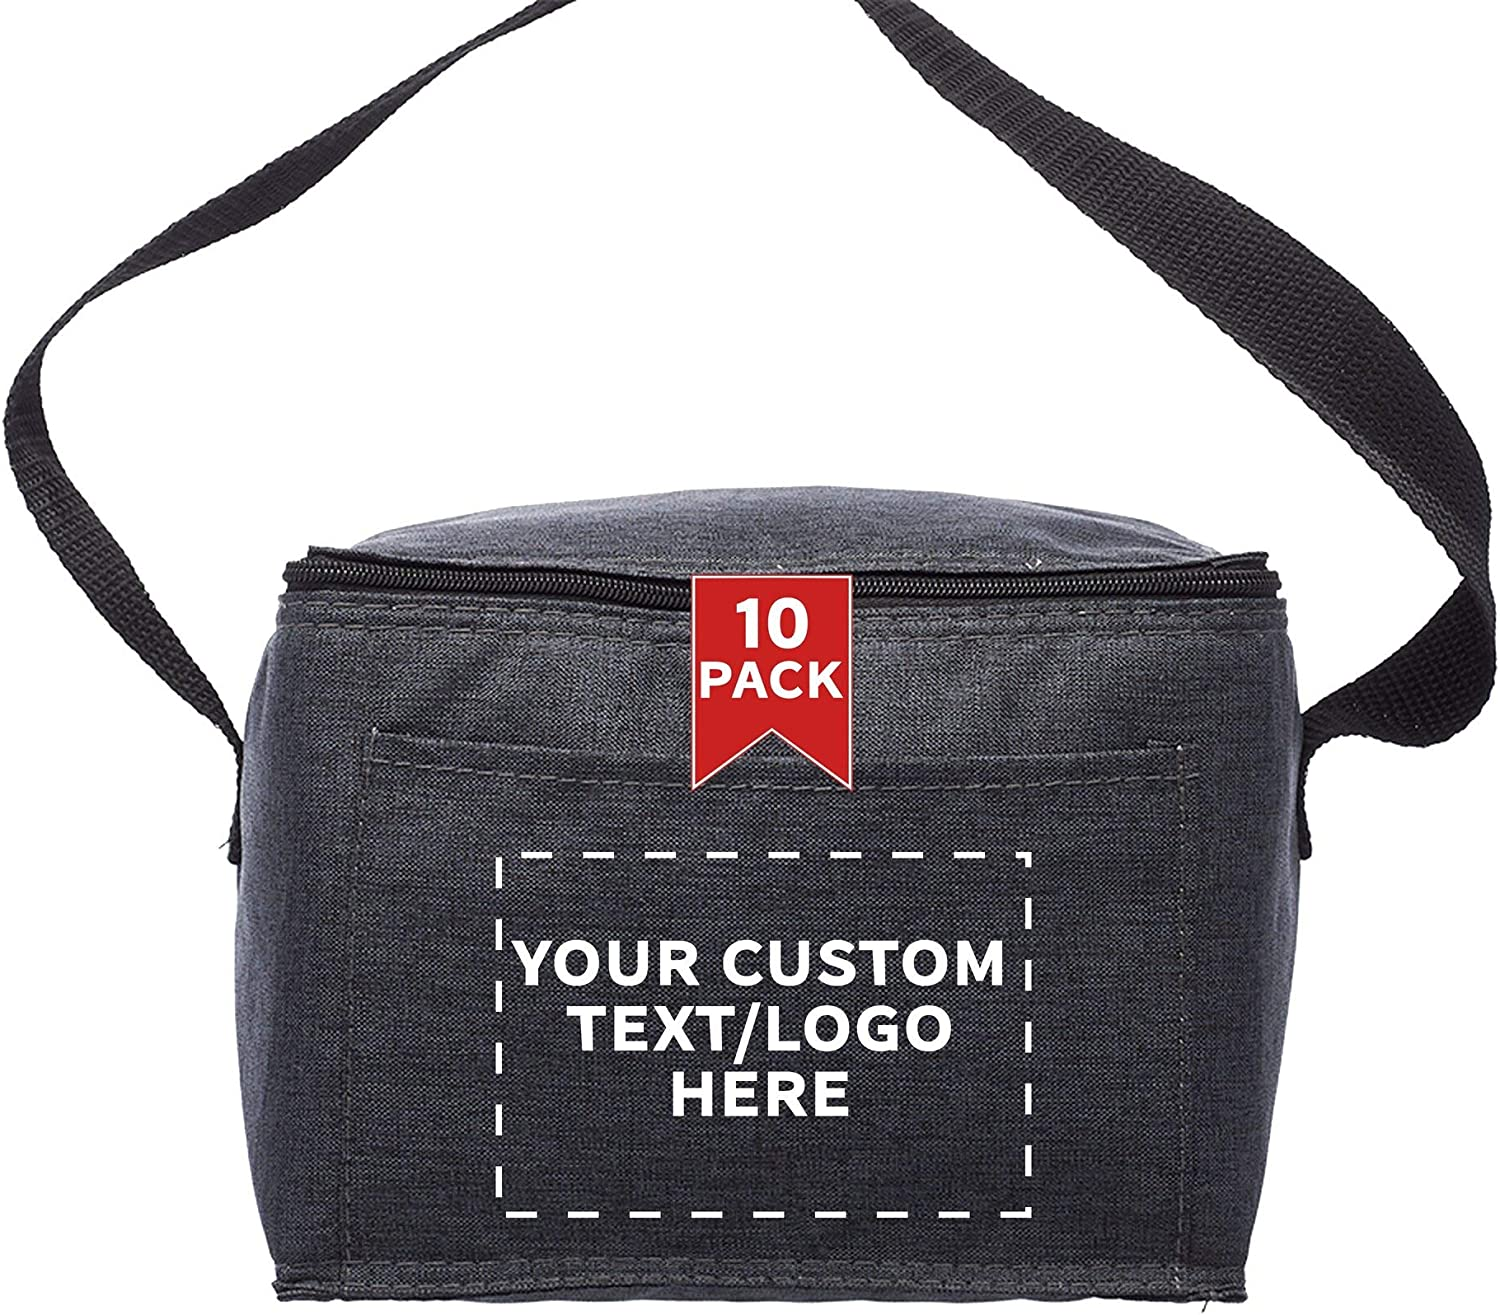 Custom Insulated Cooler Omaha Mall Lunch Max 65% OFF Bag - 10 Logo Personalized Pack